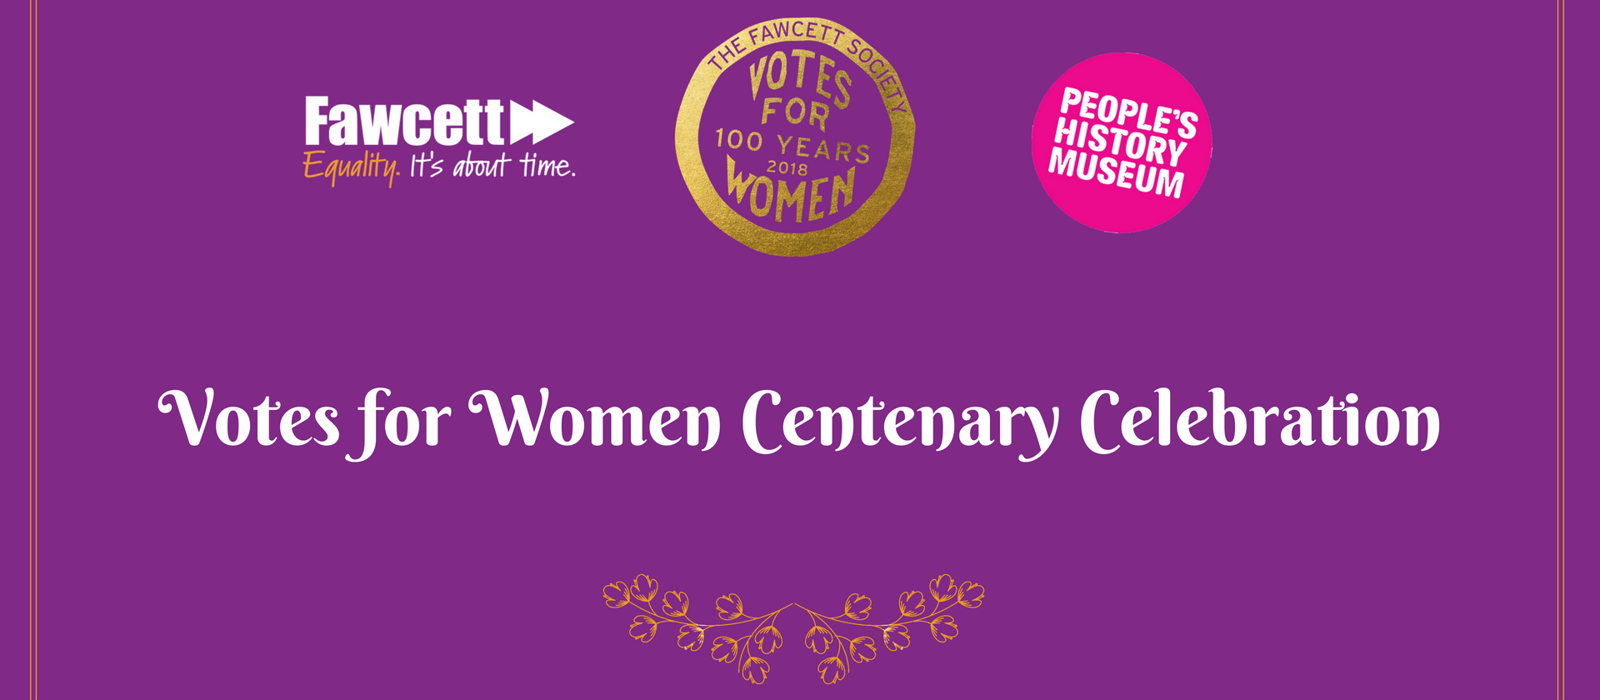 People's History Museum Votes for Women Centenary Celebration